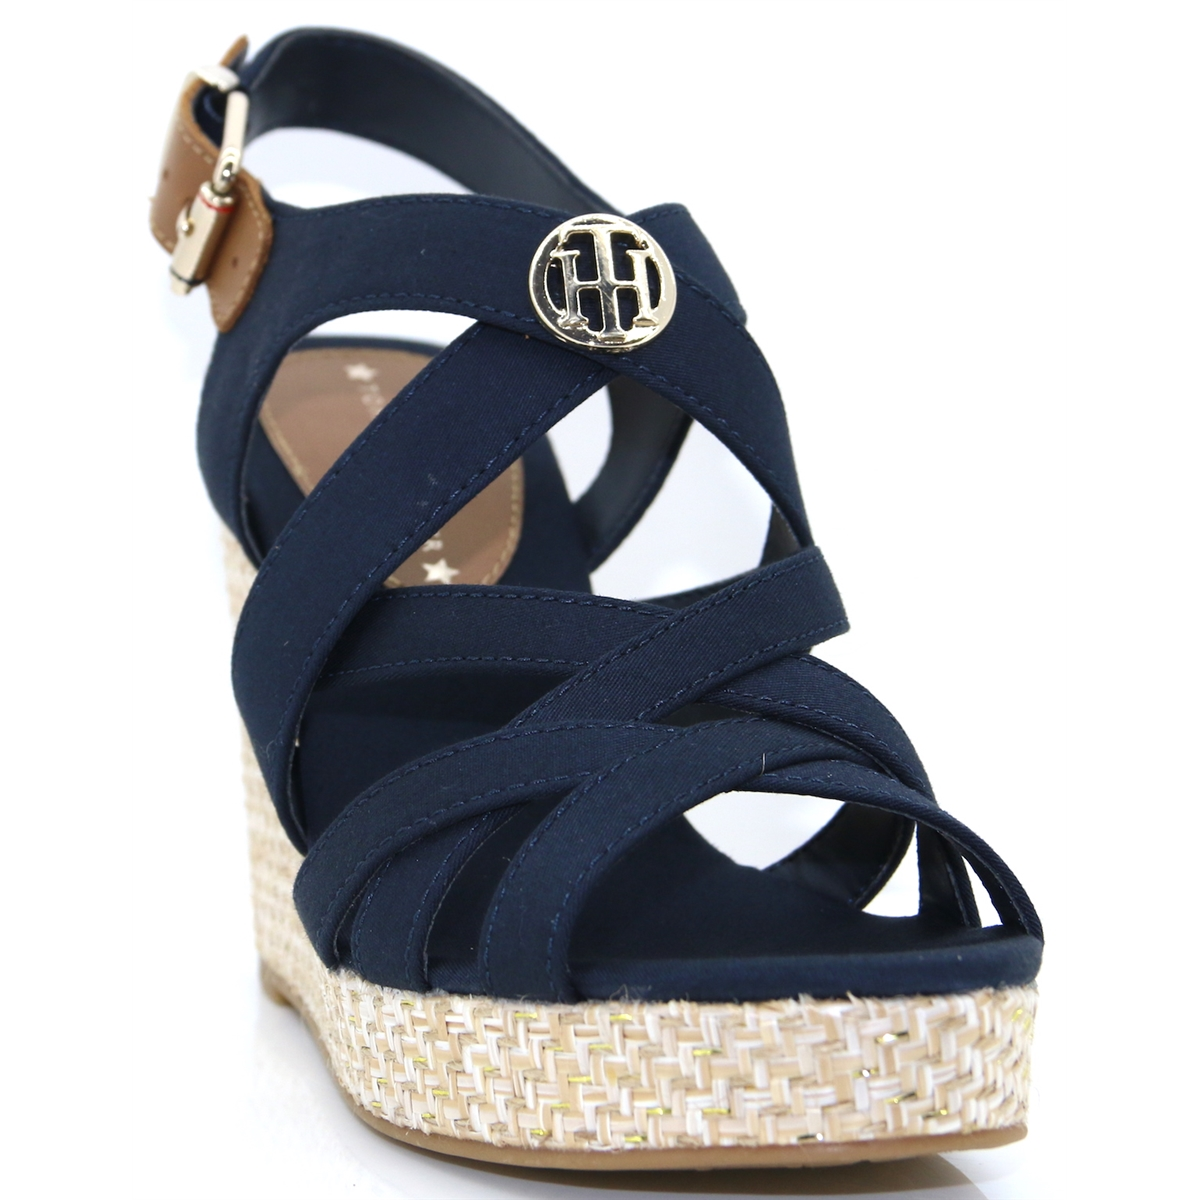 6fd6d4717 Iconic Elena Sandal Hardware - Tommy Hilfiger MIDNIGHT WEDGES - Panache  Shoe Company